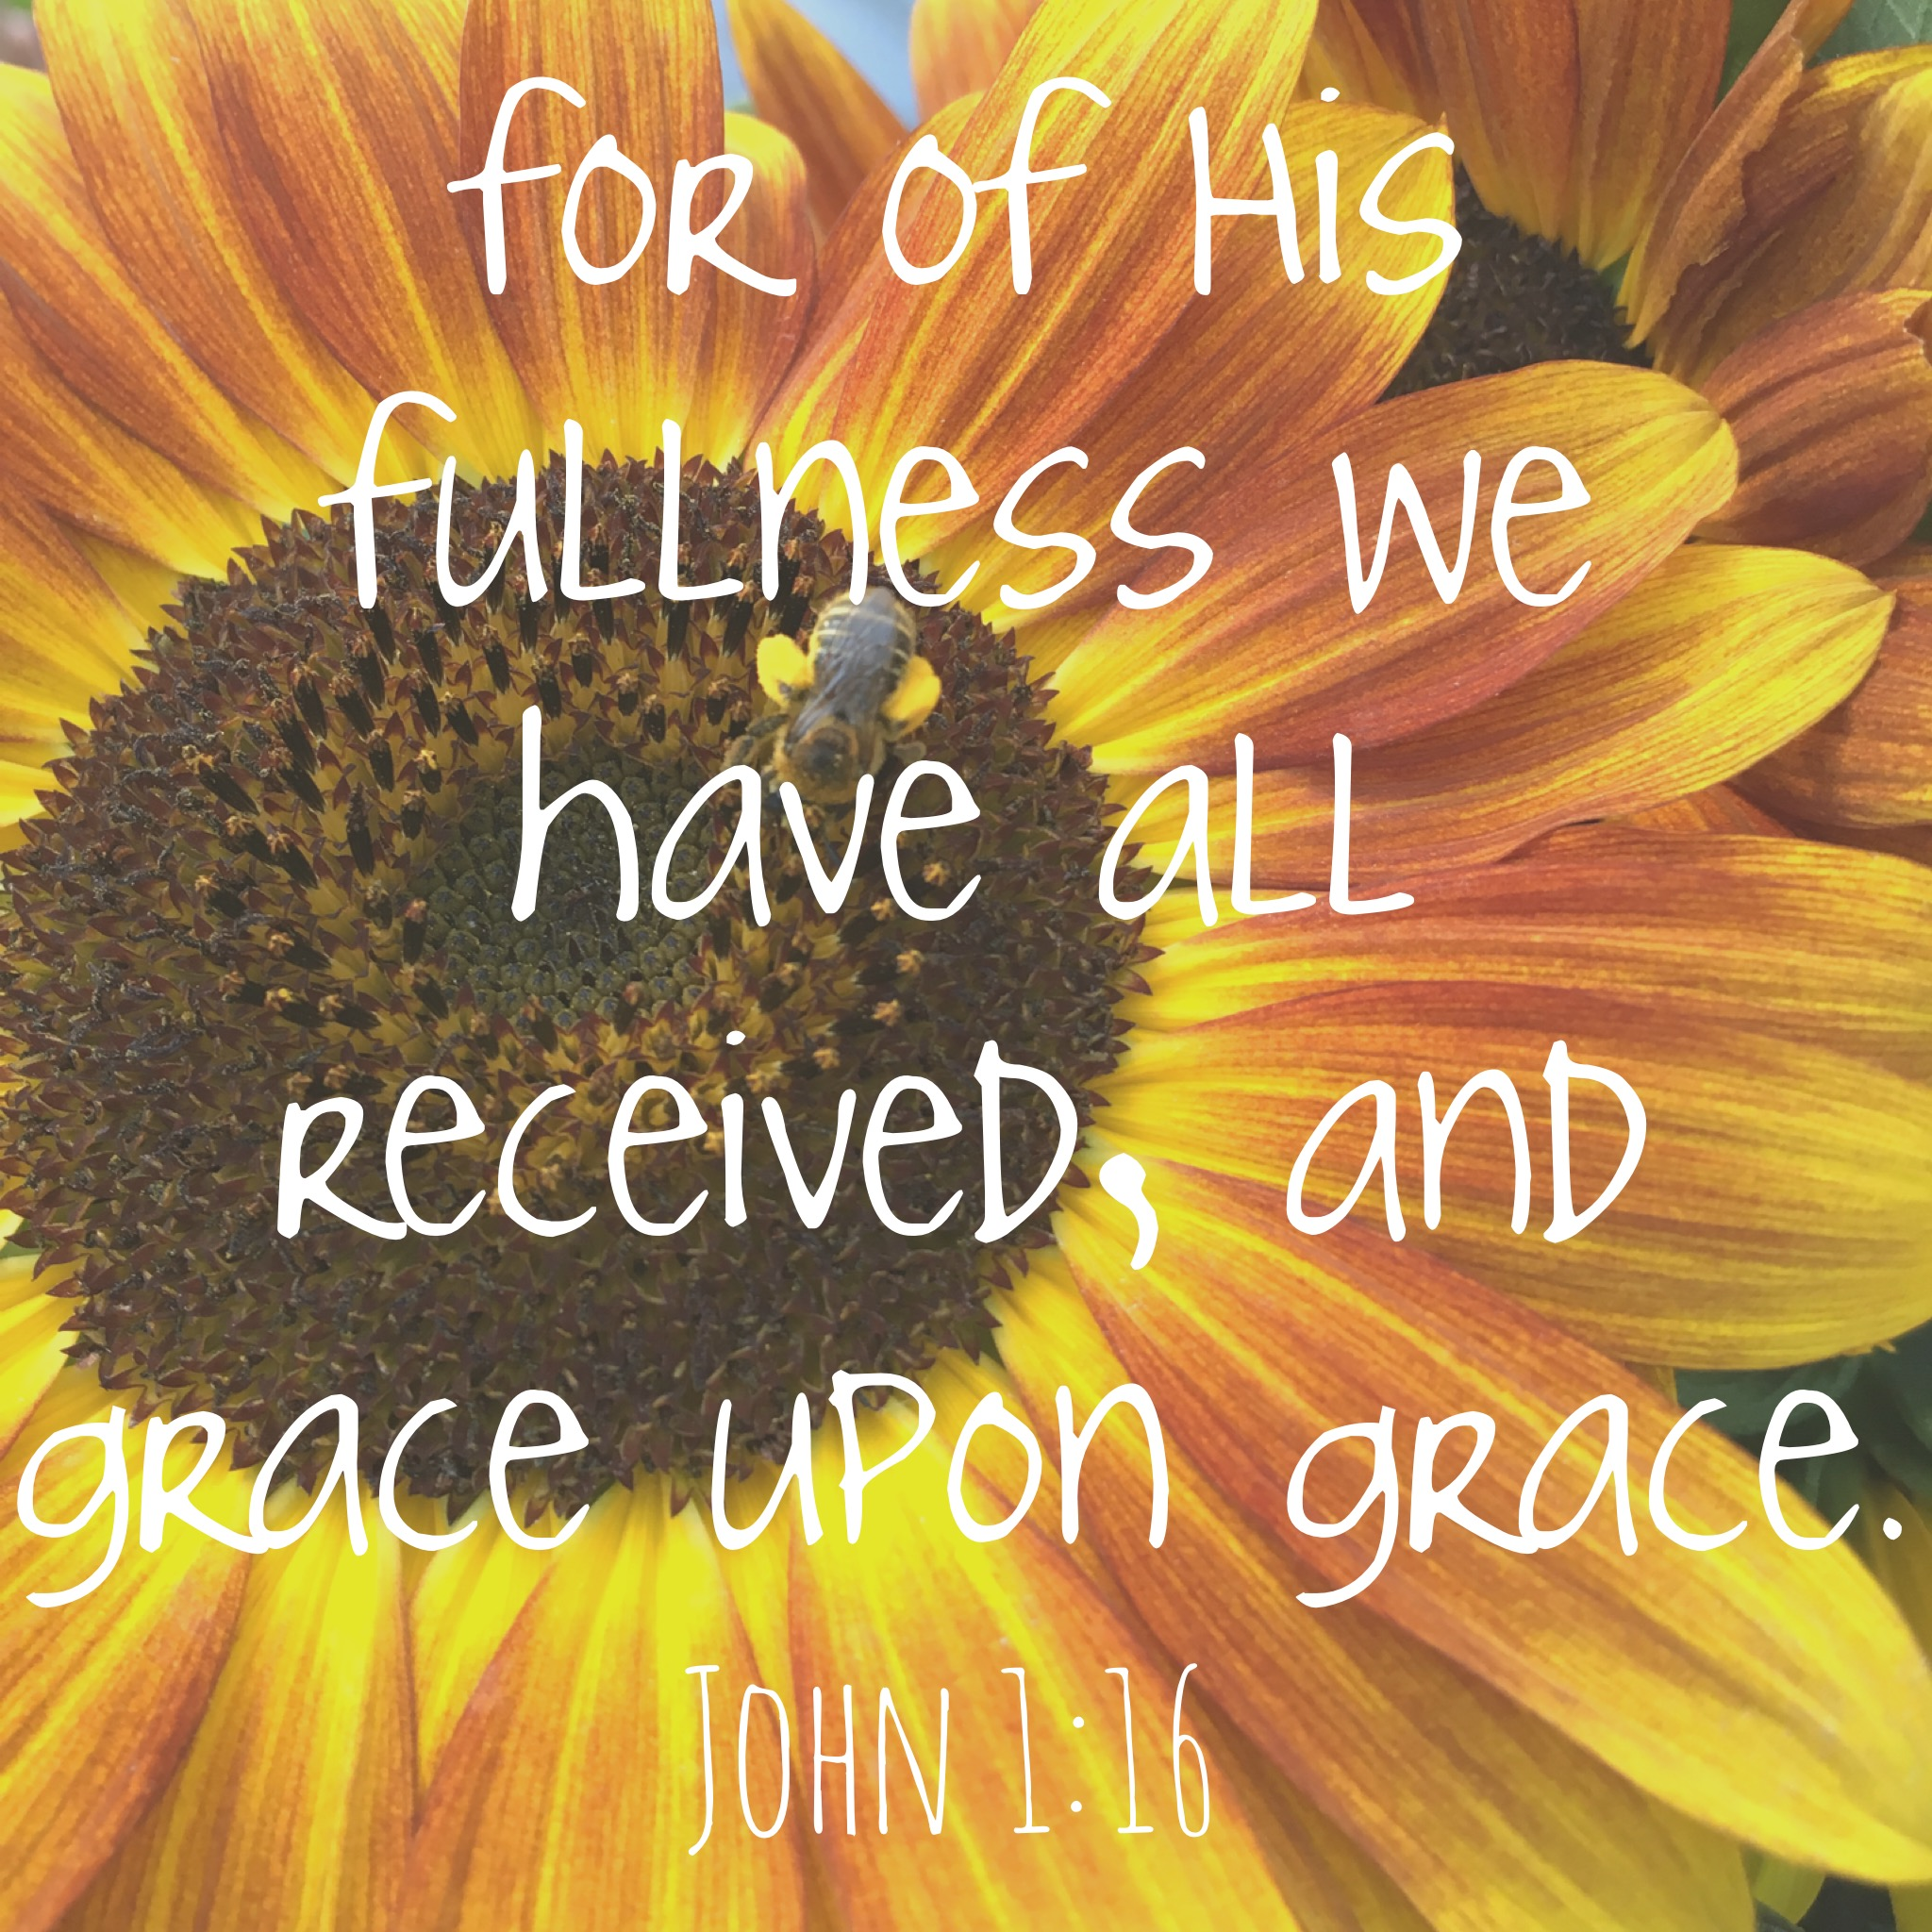 Recipe for Life Cards Week 3 John 1:16 Grace From the Family With Love